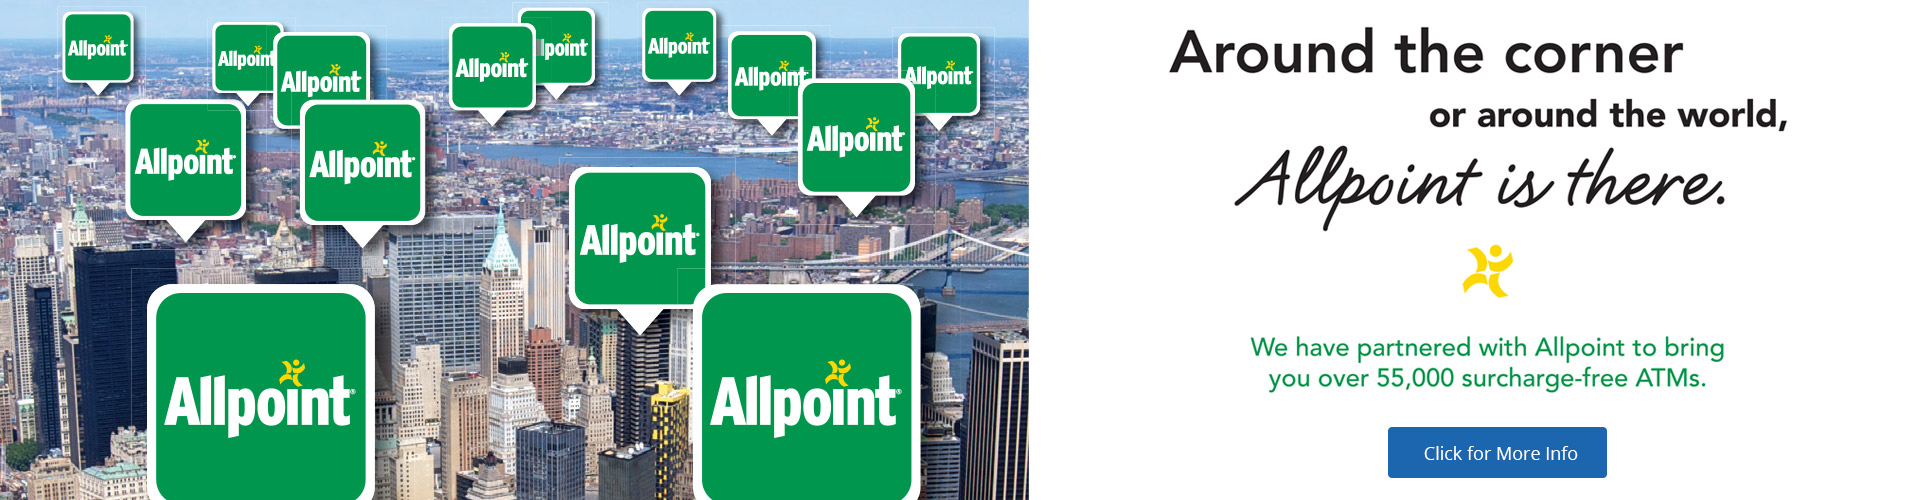 Allpoint is here - ATM